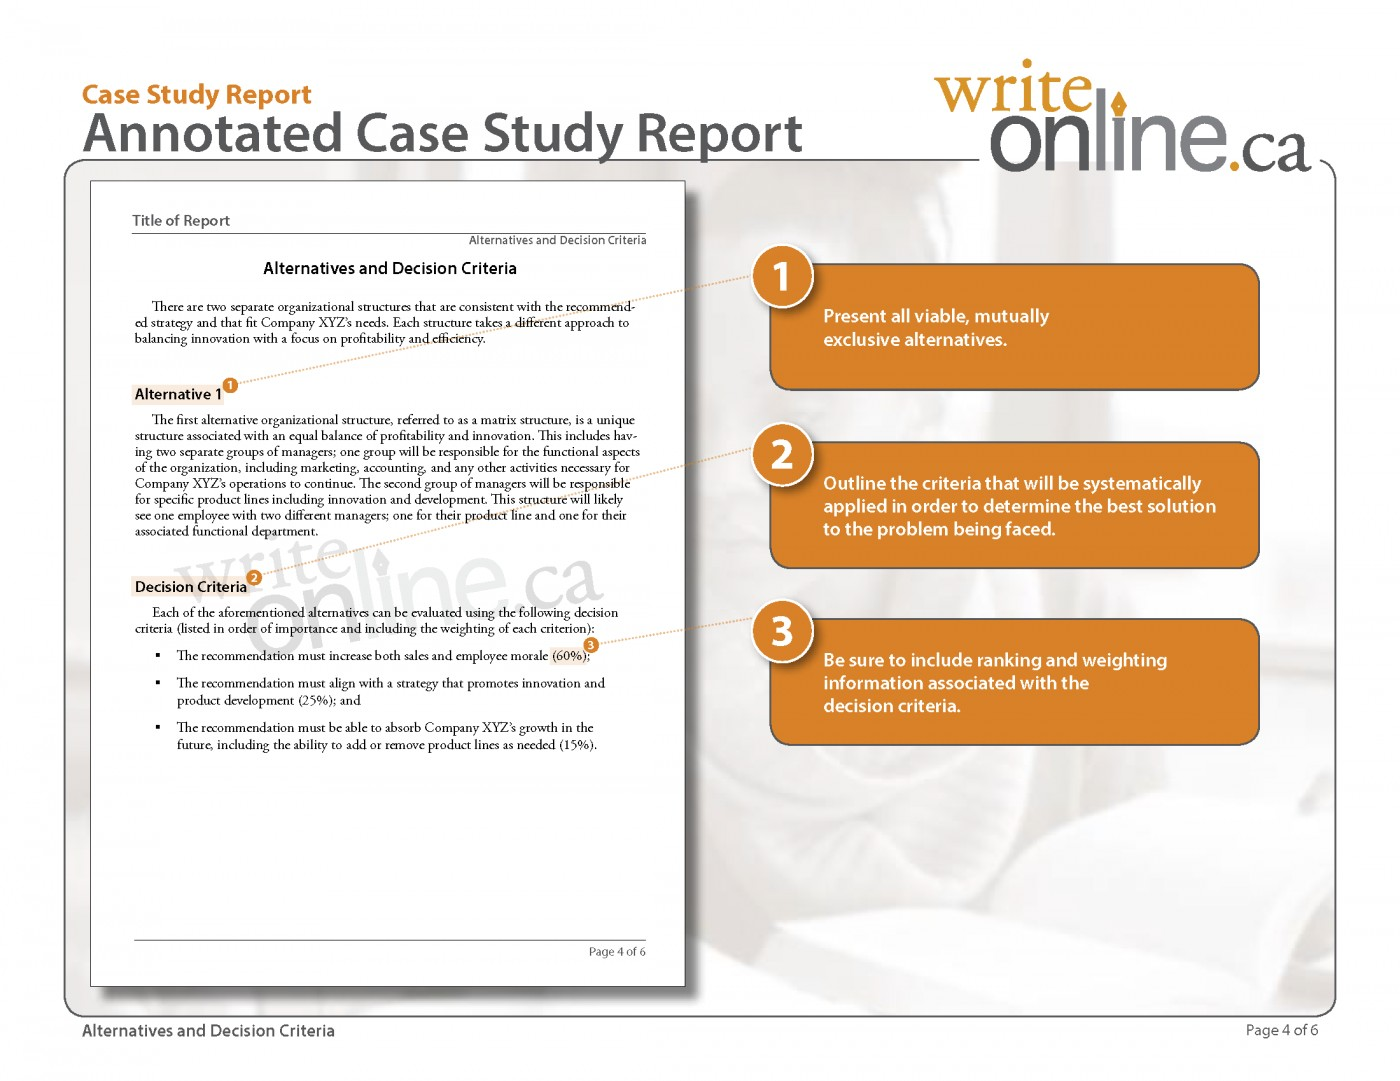 004 Research Paper Casestudy Annotatedfull Page 4 Parts Of And Its Definition Staggering A Pdf 1400